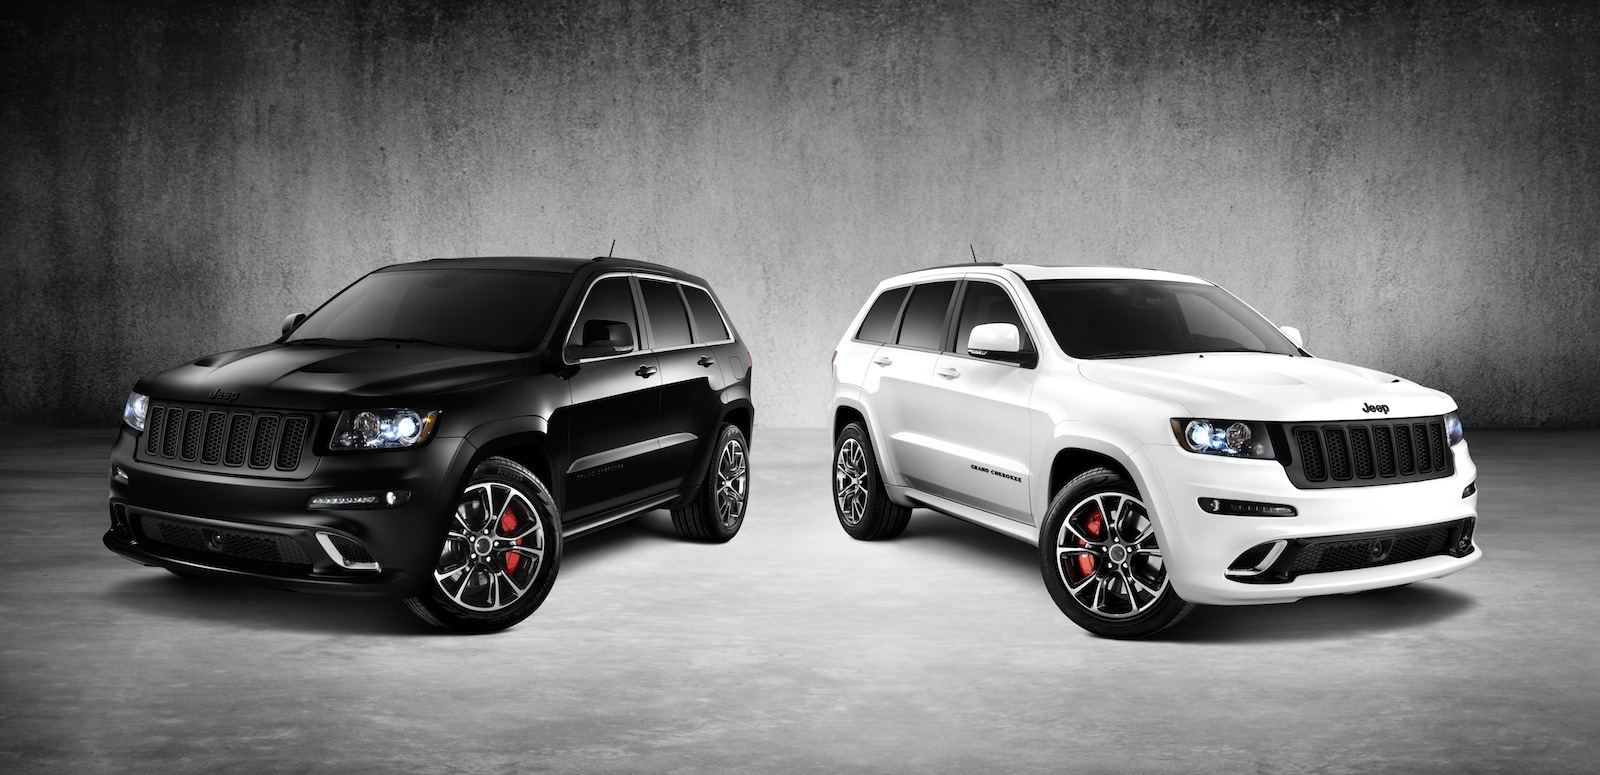 Jeep Grand Cherokee Srt8 Alpine Vapour Special Editions For Australia Caradvice